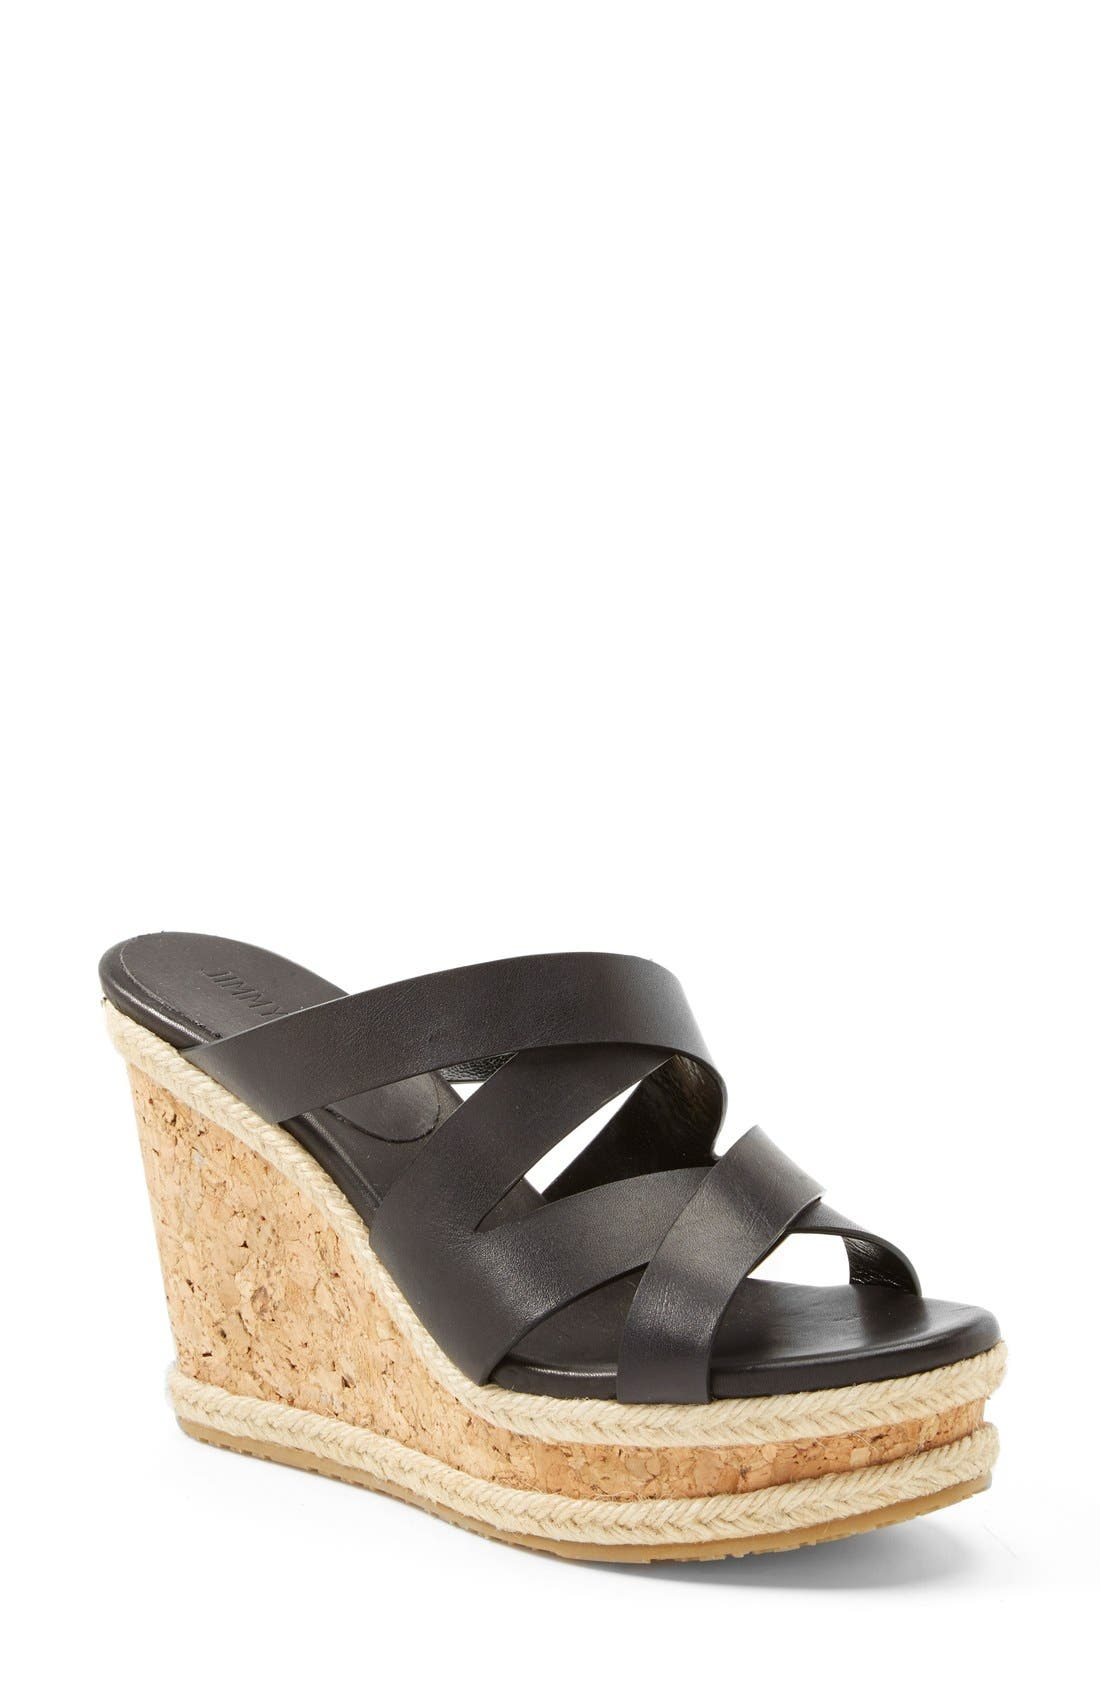 Main Image - Jimmy Choo 'Prisma' Leather Wedge Sandal (Women)